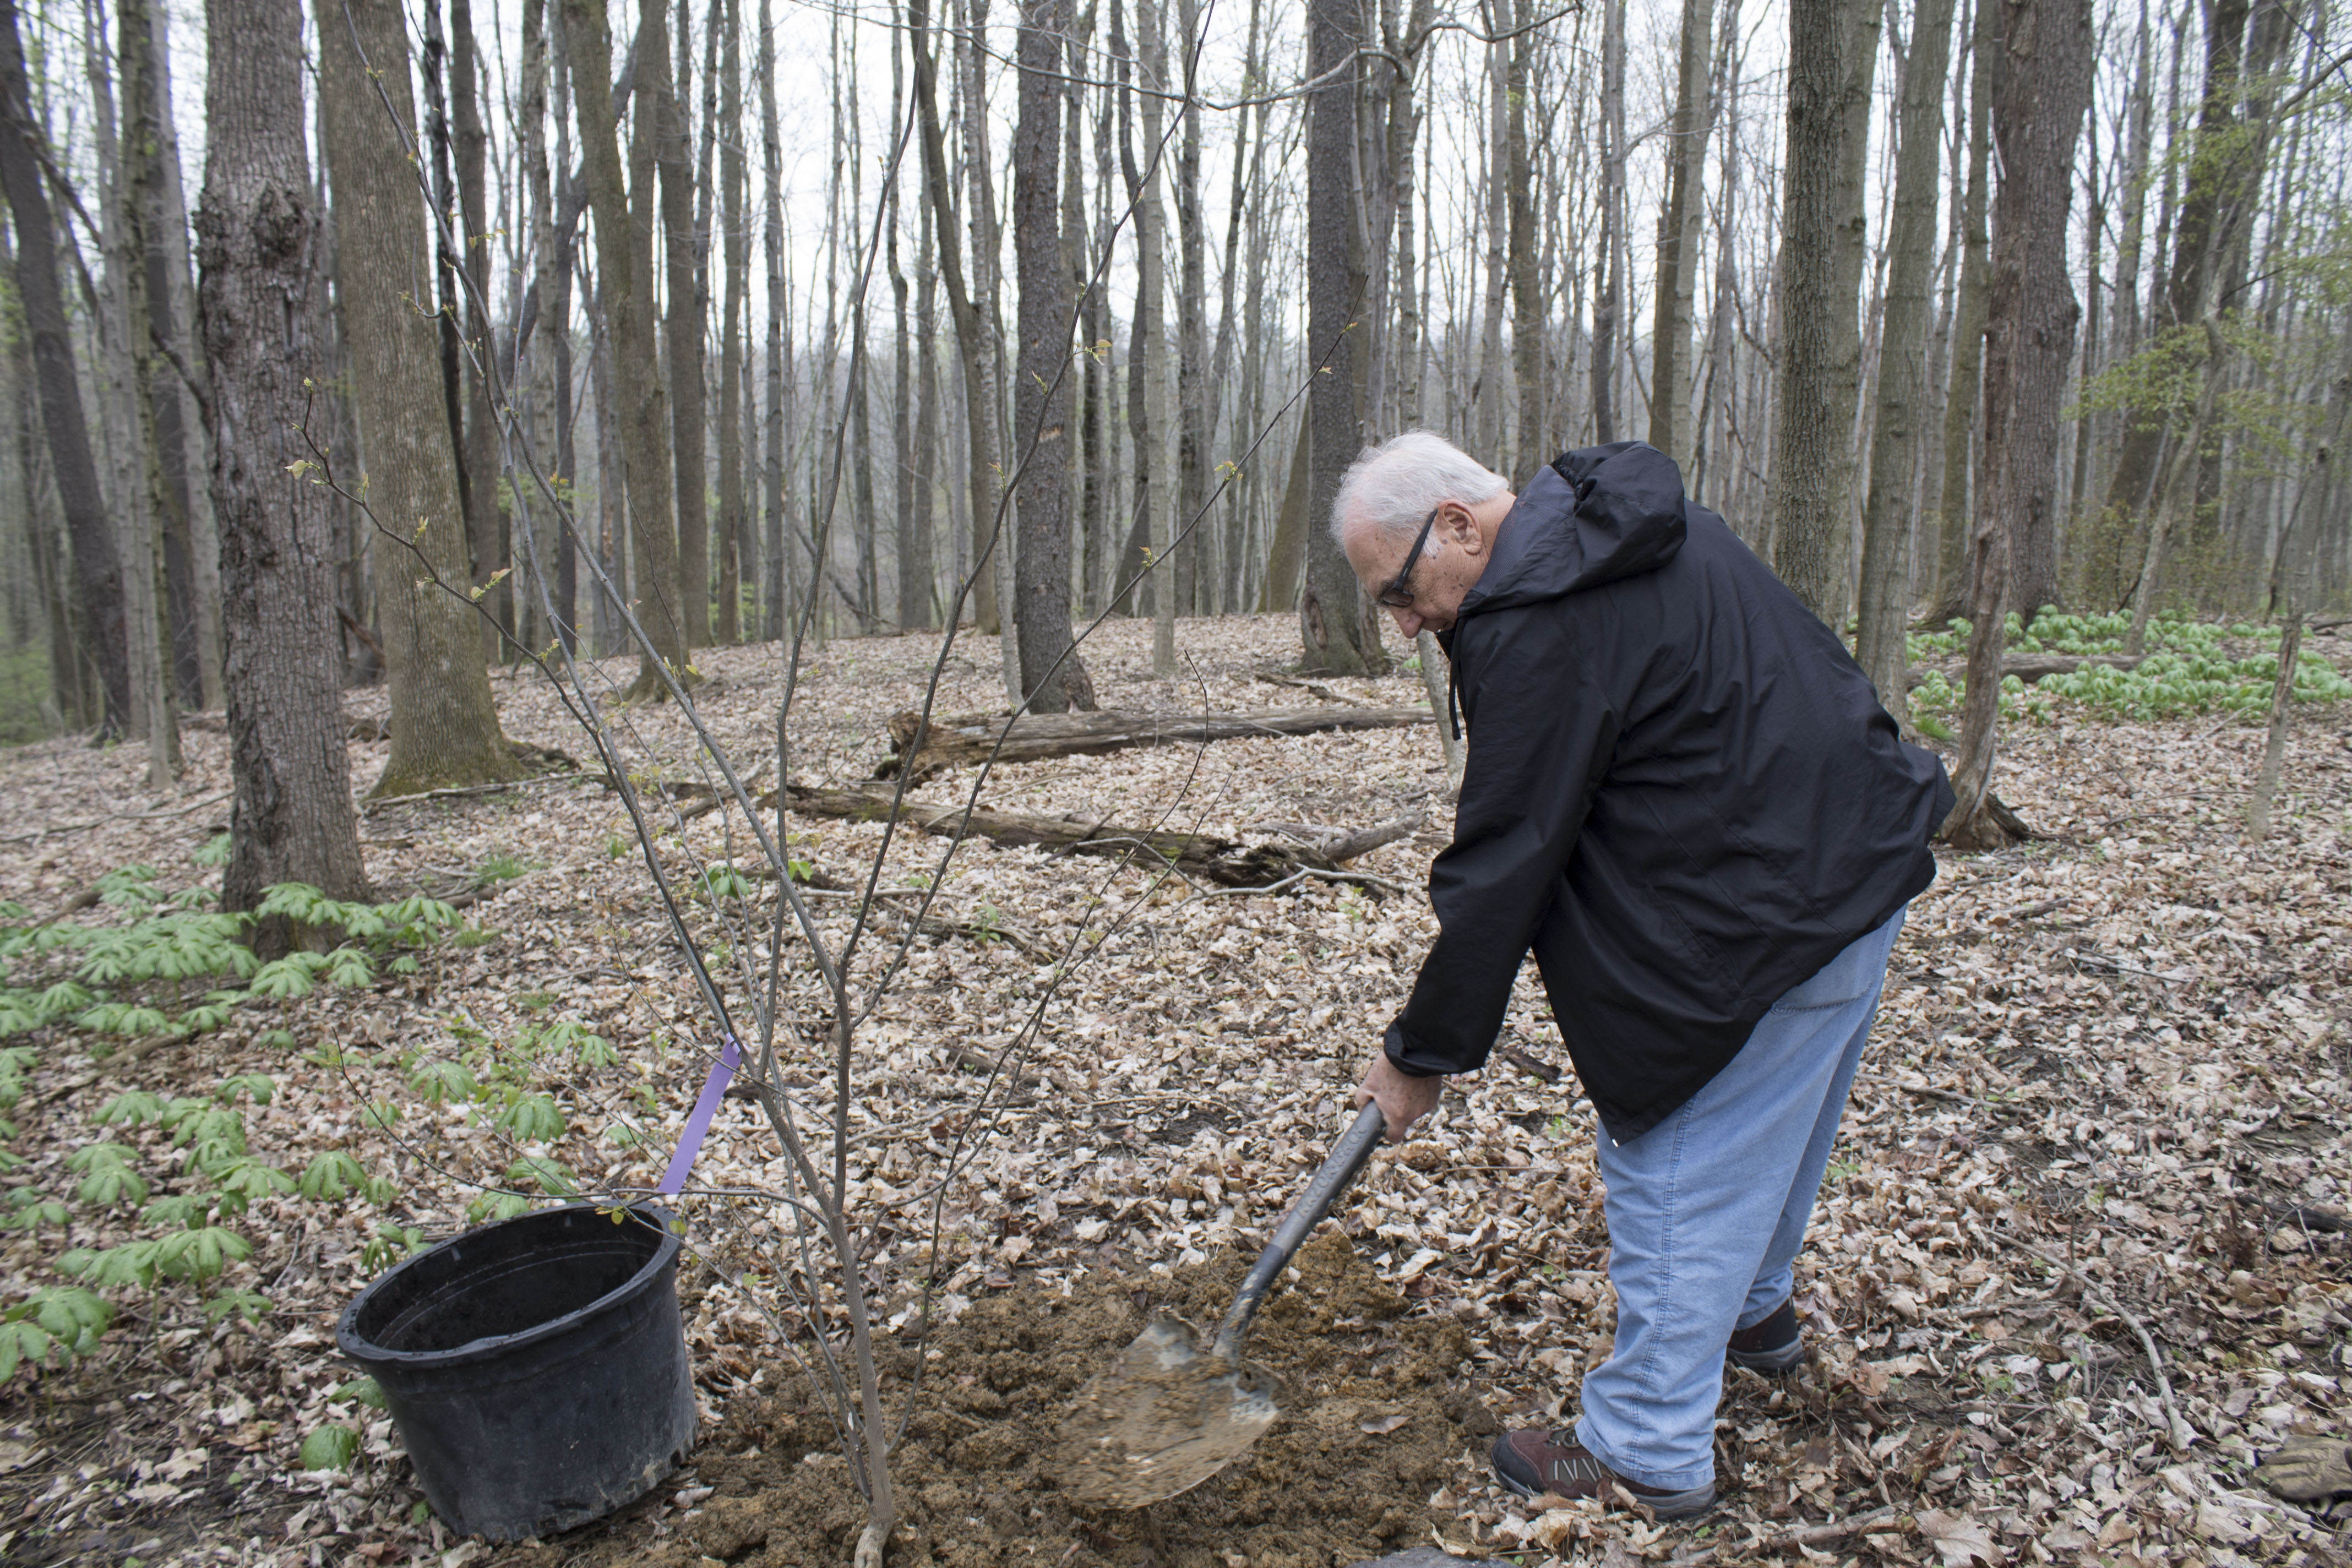 Volunteer Frank Shipley planting a tree